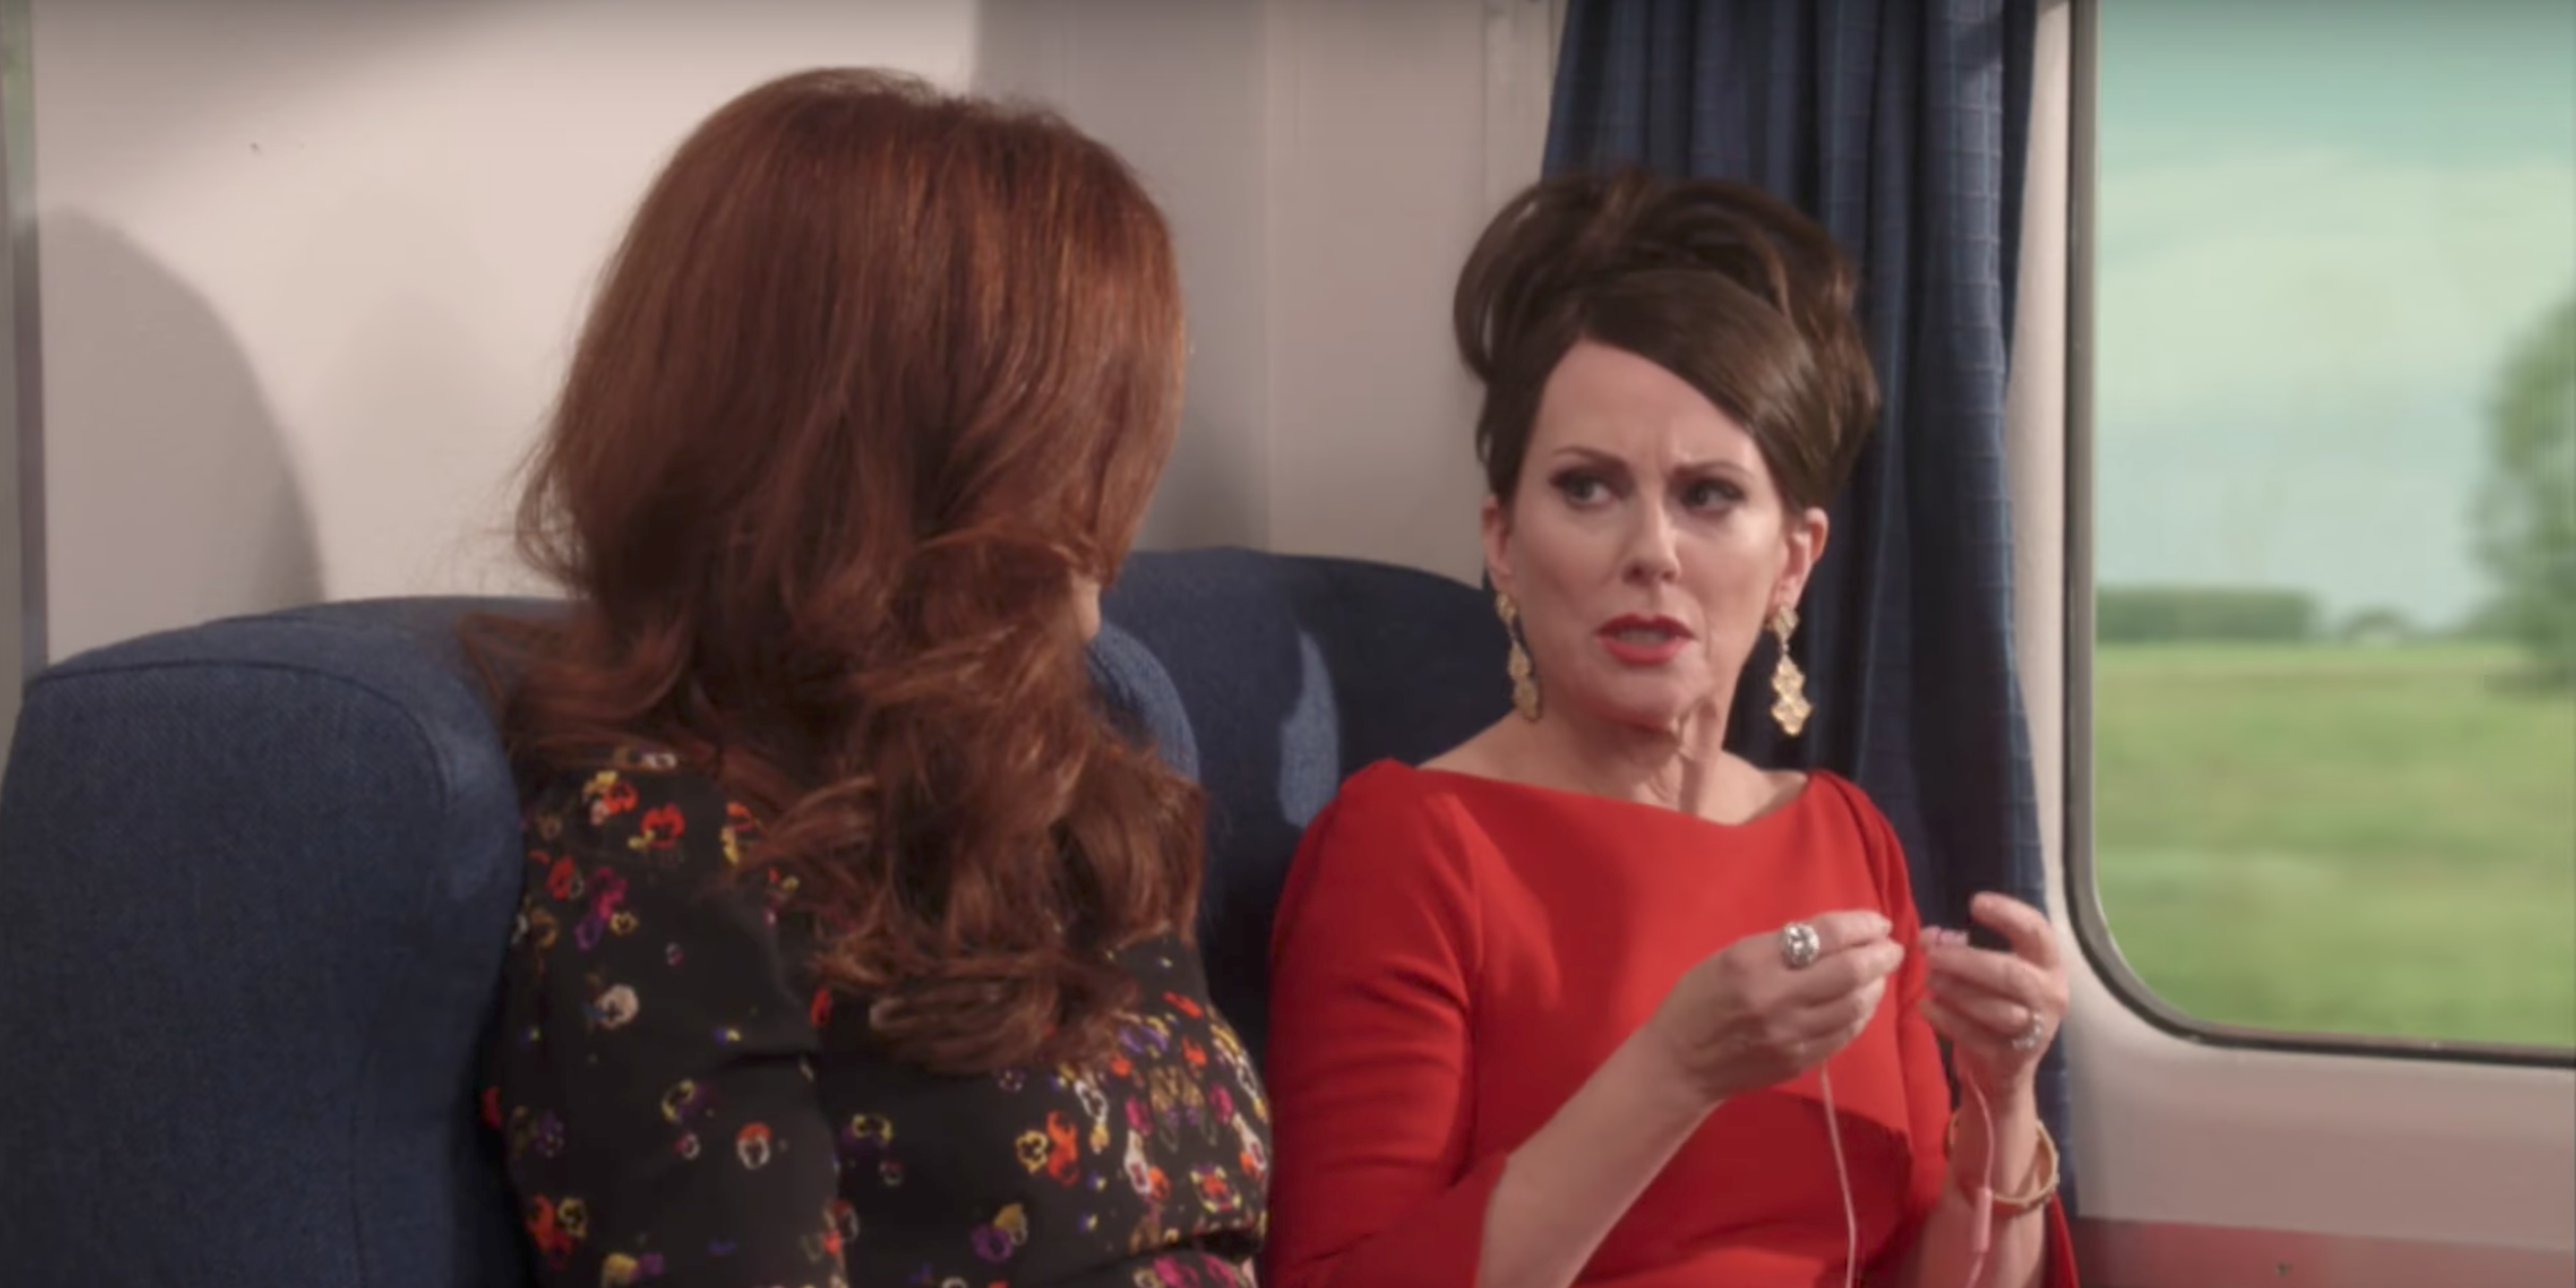 Debra Messing and Megan Mullally in the new Will & Grace